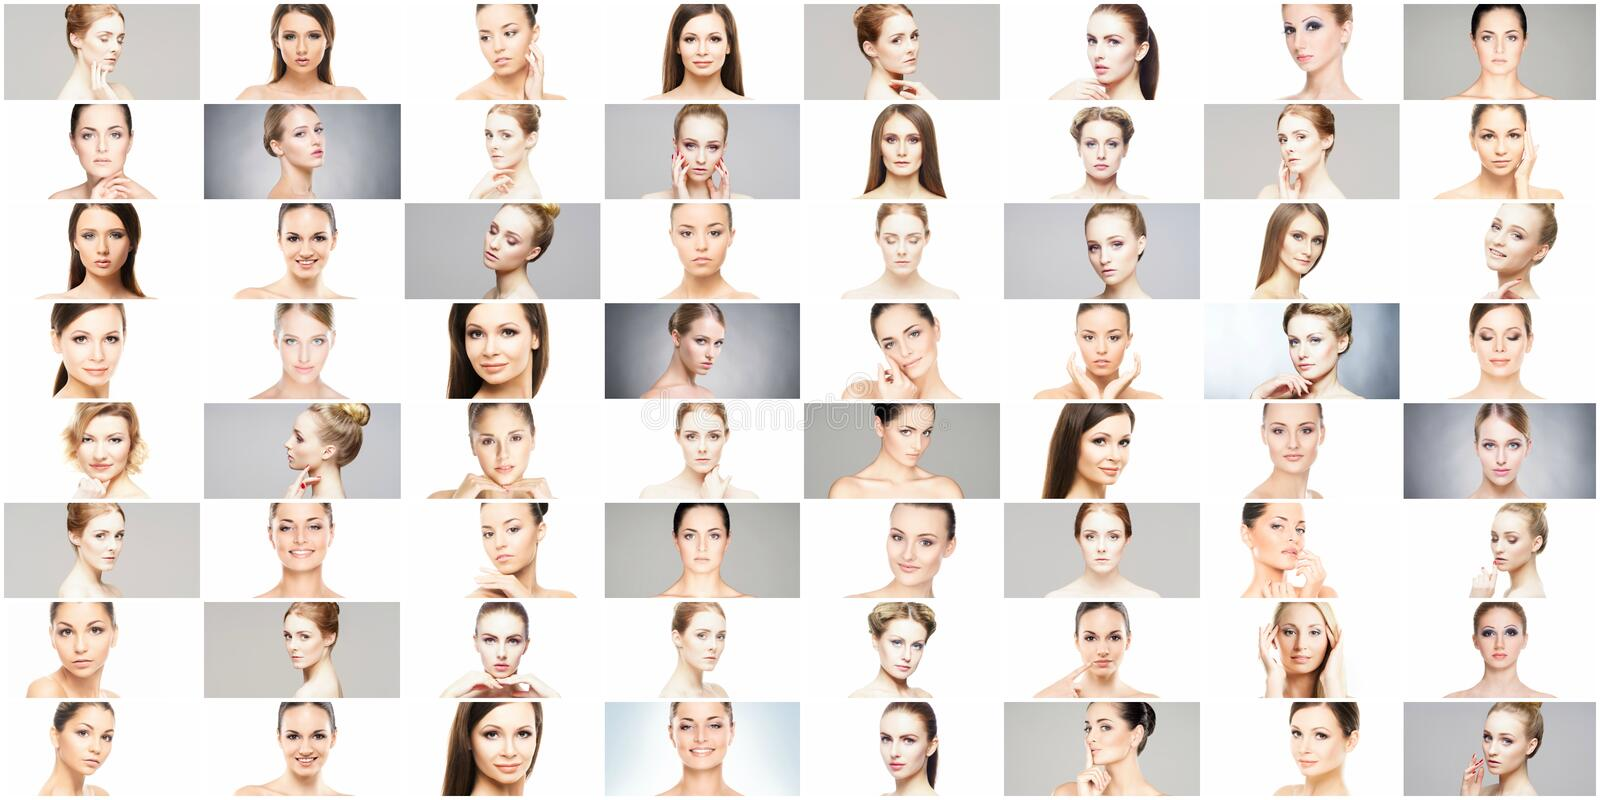 Beautiful, healthy and young female portraits collection royalty free stock photos